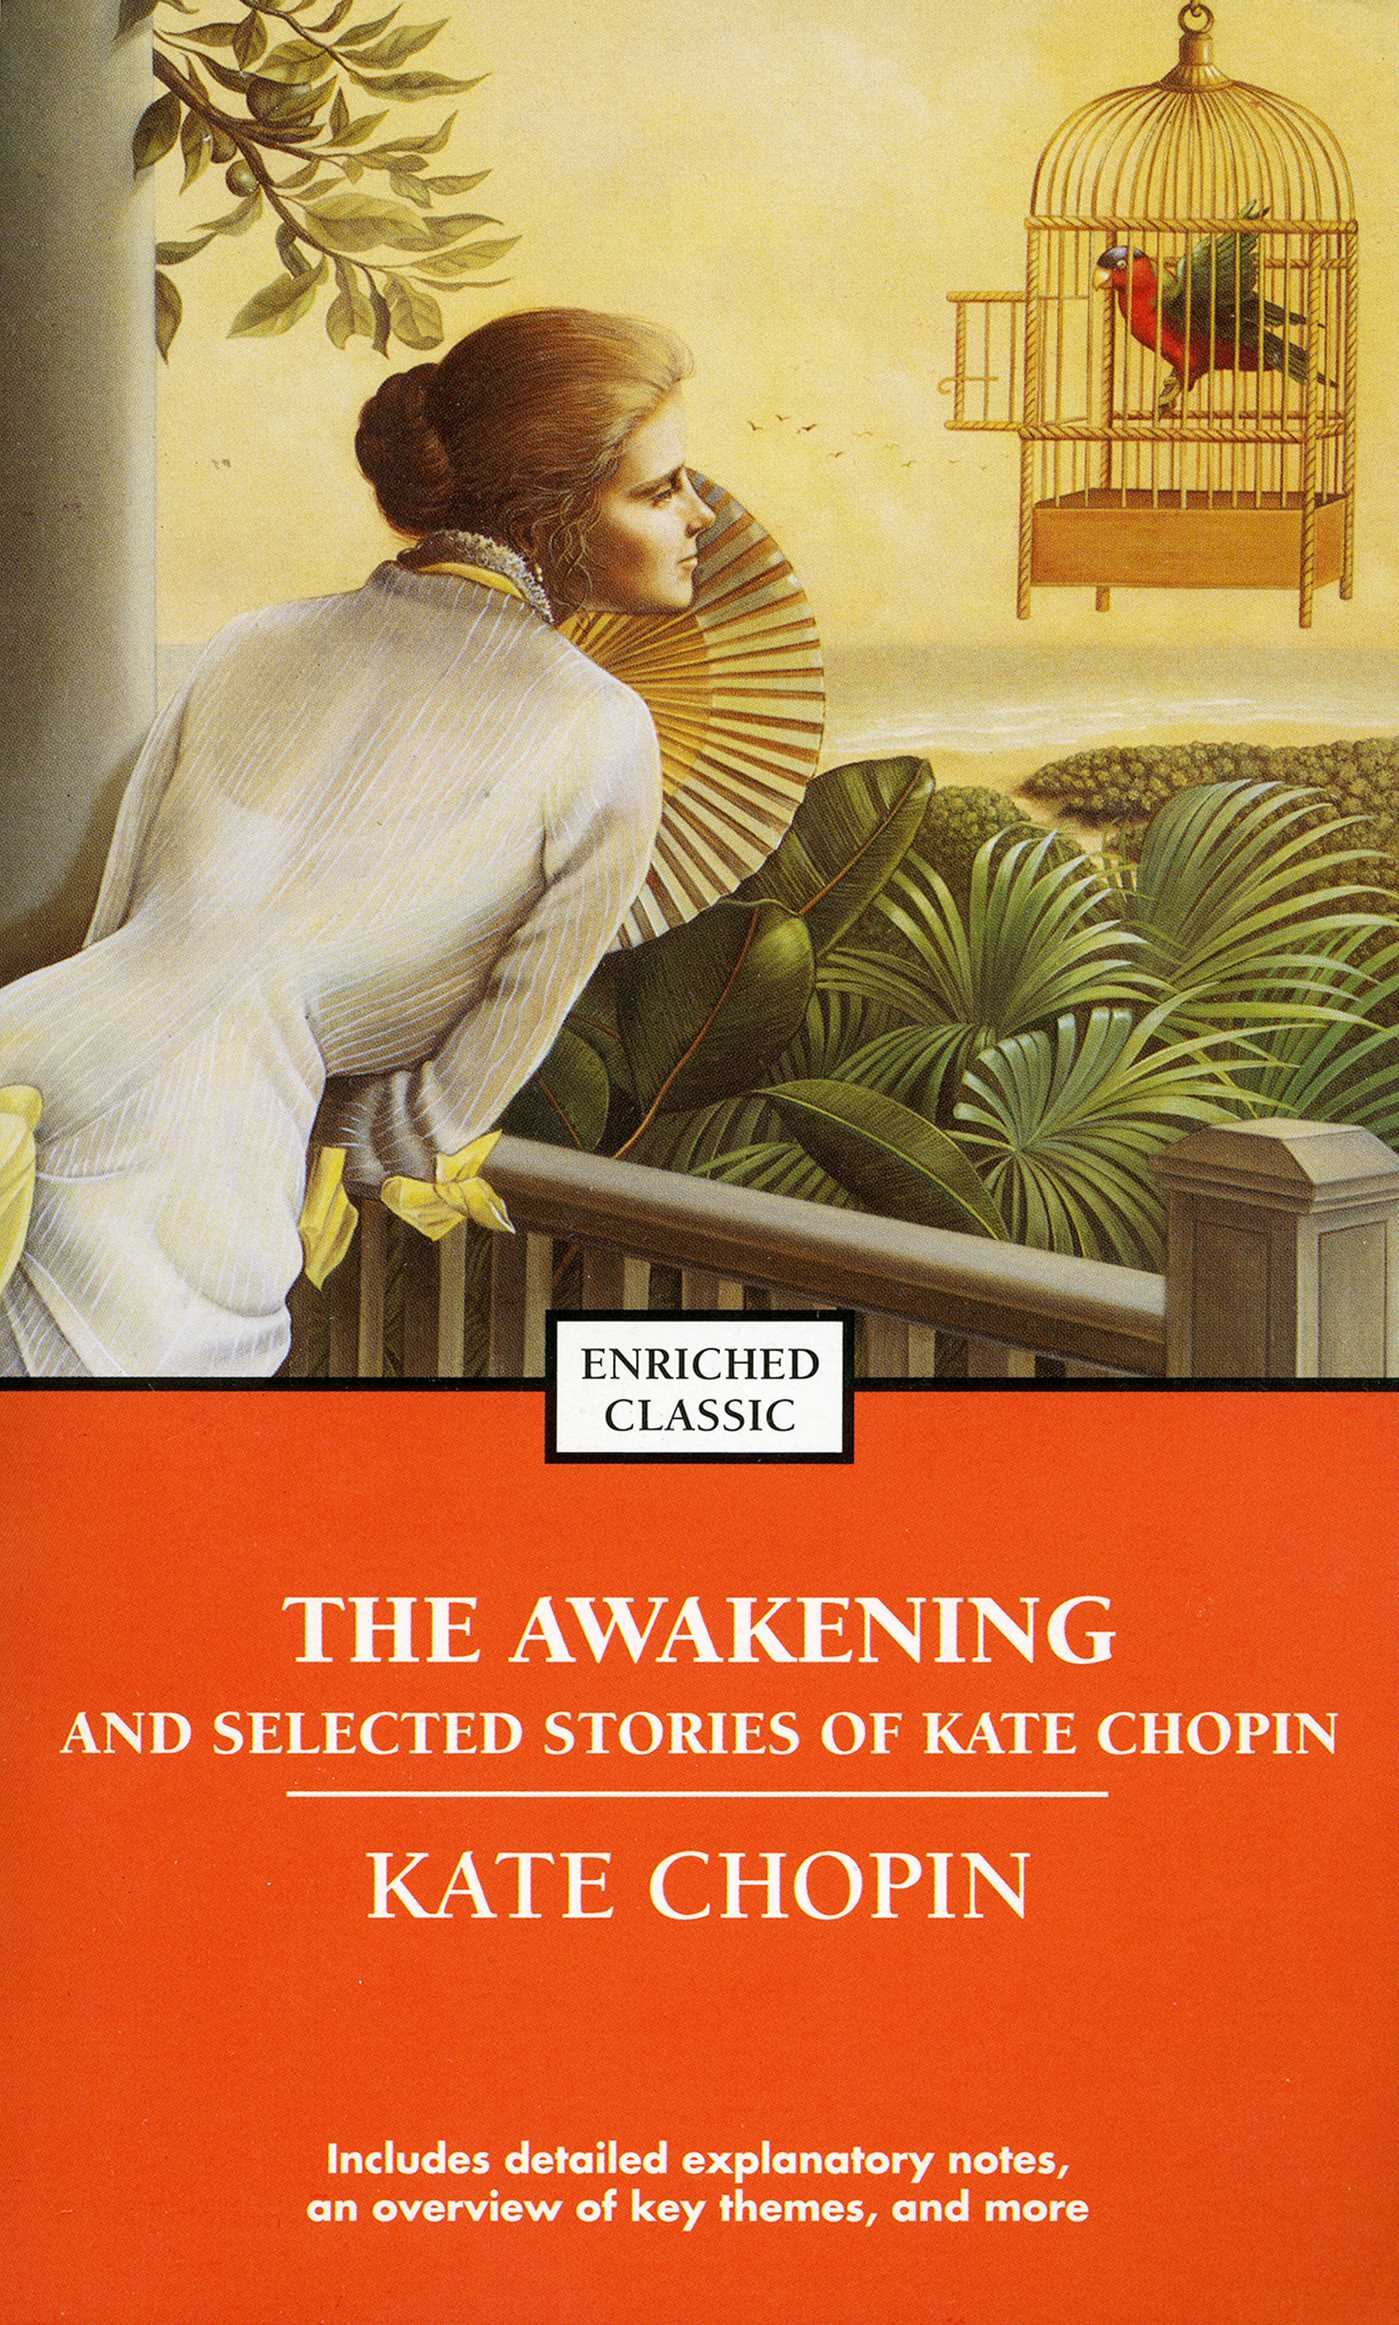 essay symbols awakening Symbolism in kate chopin's the awakening on studybaycom - kate chopin makes use of powerful as well as, online marketplace for students.